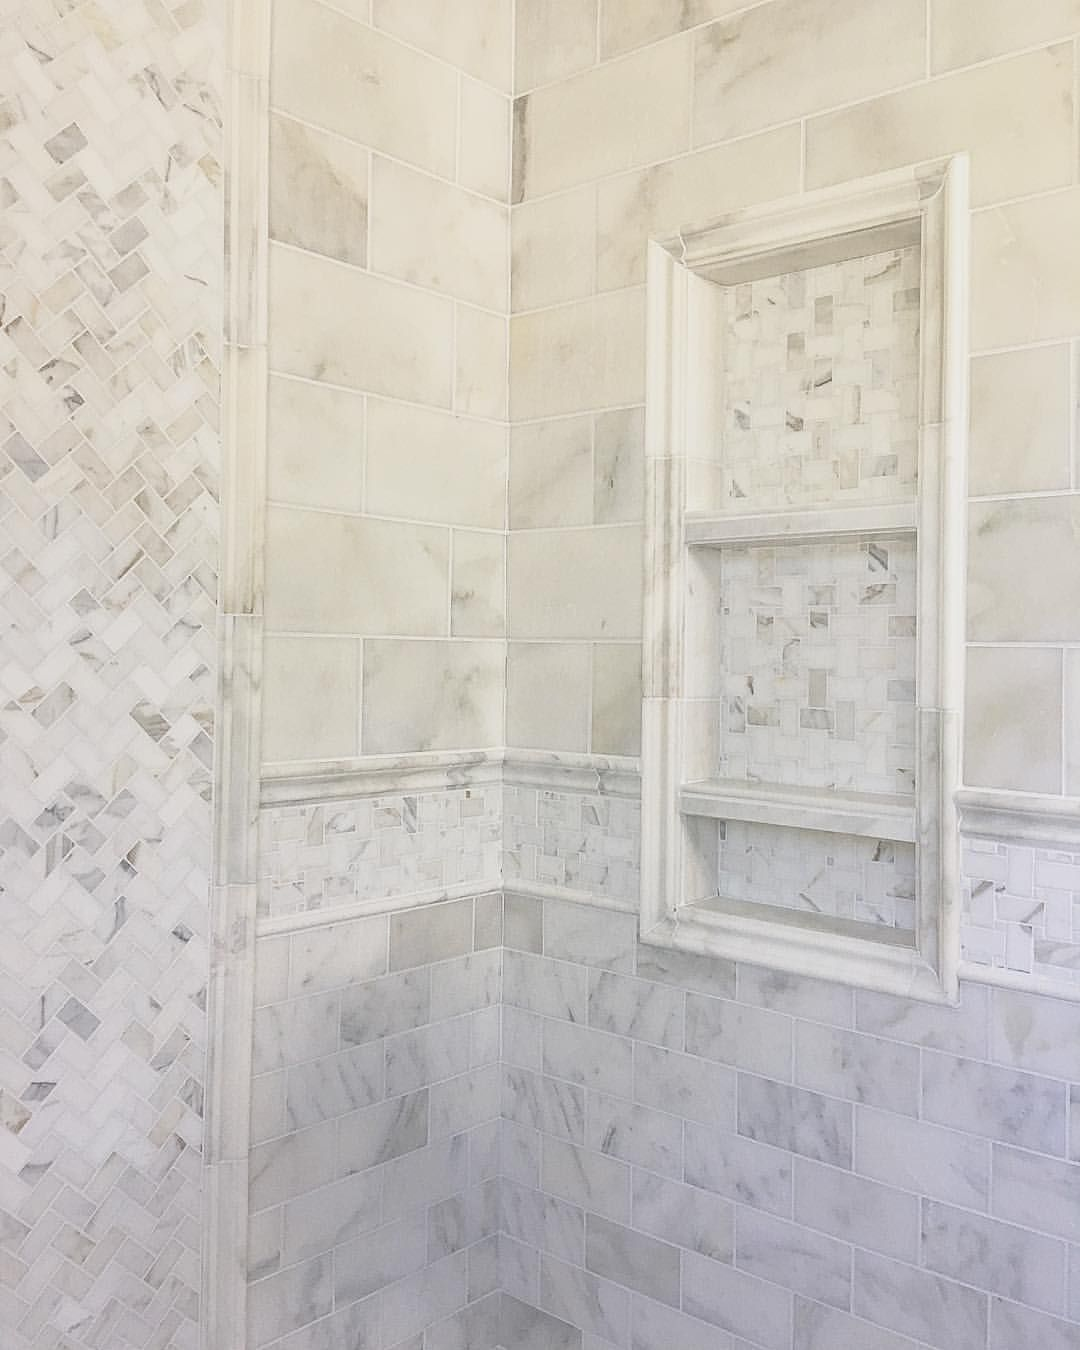 15 Likes 1 Comments Tilebuys Com Tilebuys On Instagram Two Lots Of Calacutta Gold We Shower Tile Calcutta Gold Marble Bathroom Arabesque Tile Bathroom